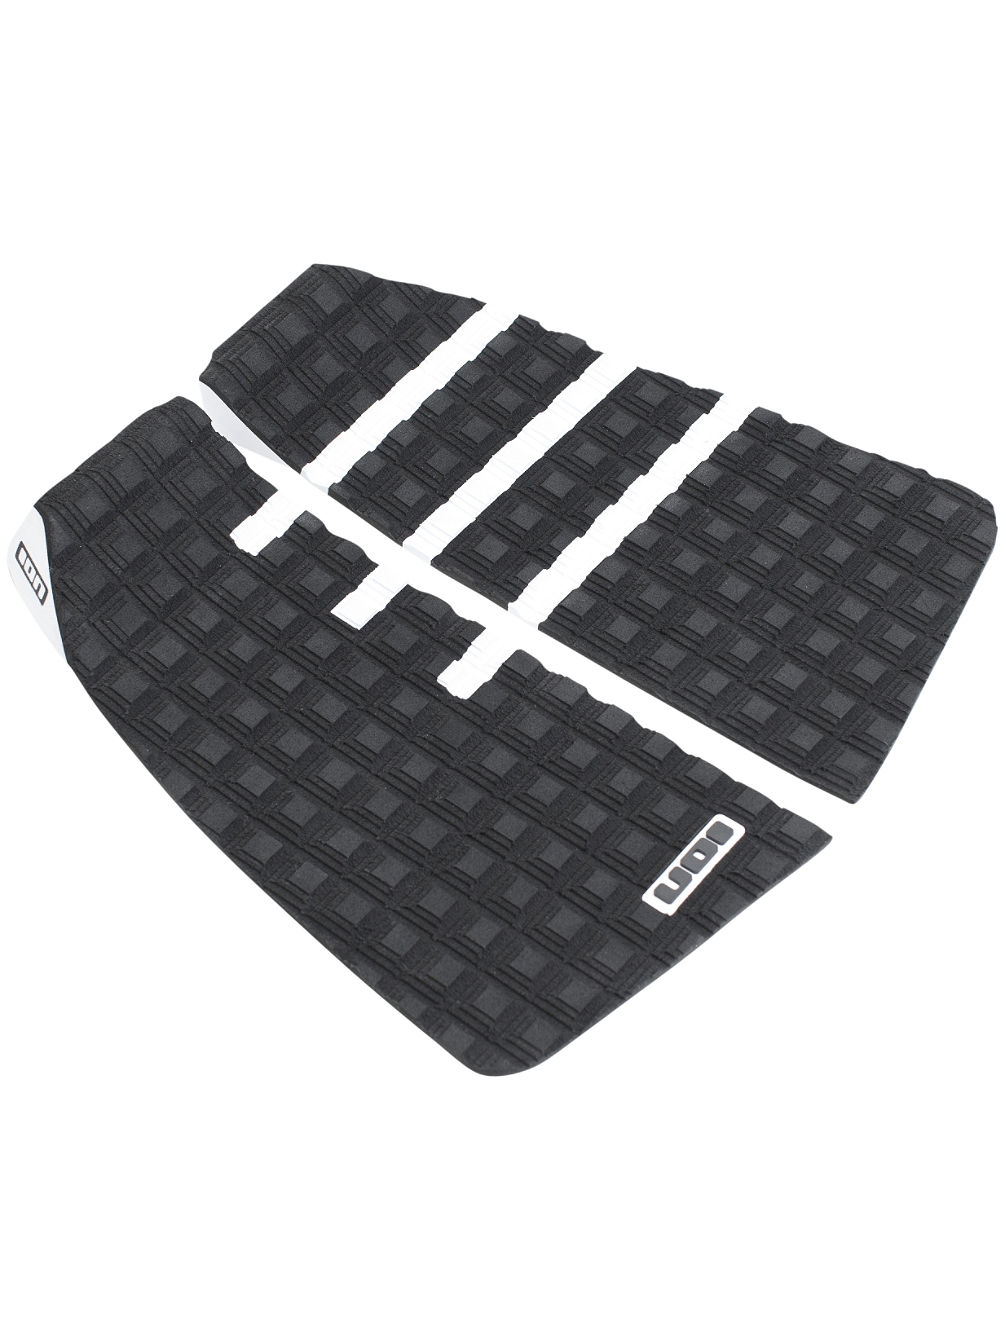 Stripe (2Pcs) Traction Pad